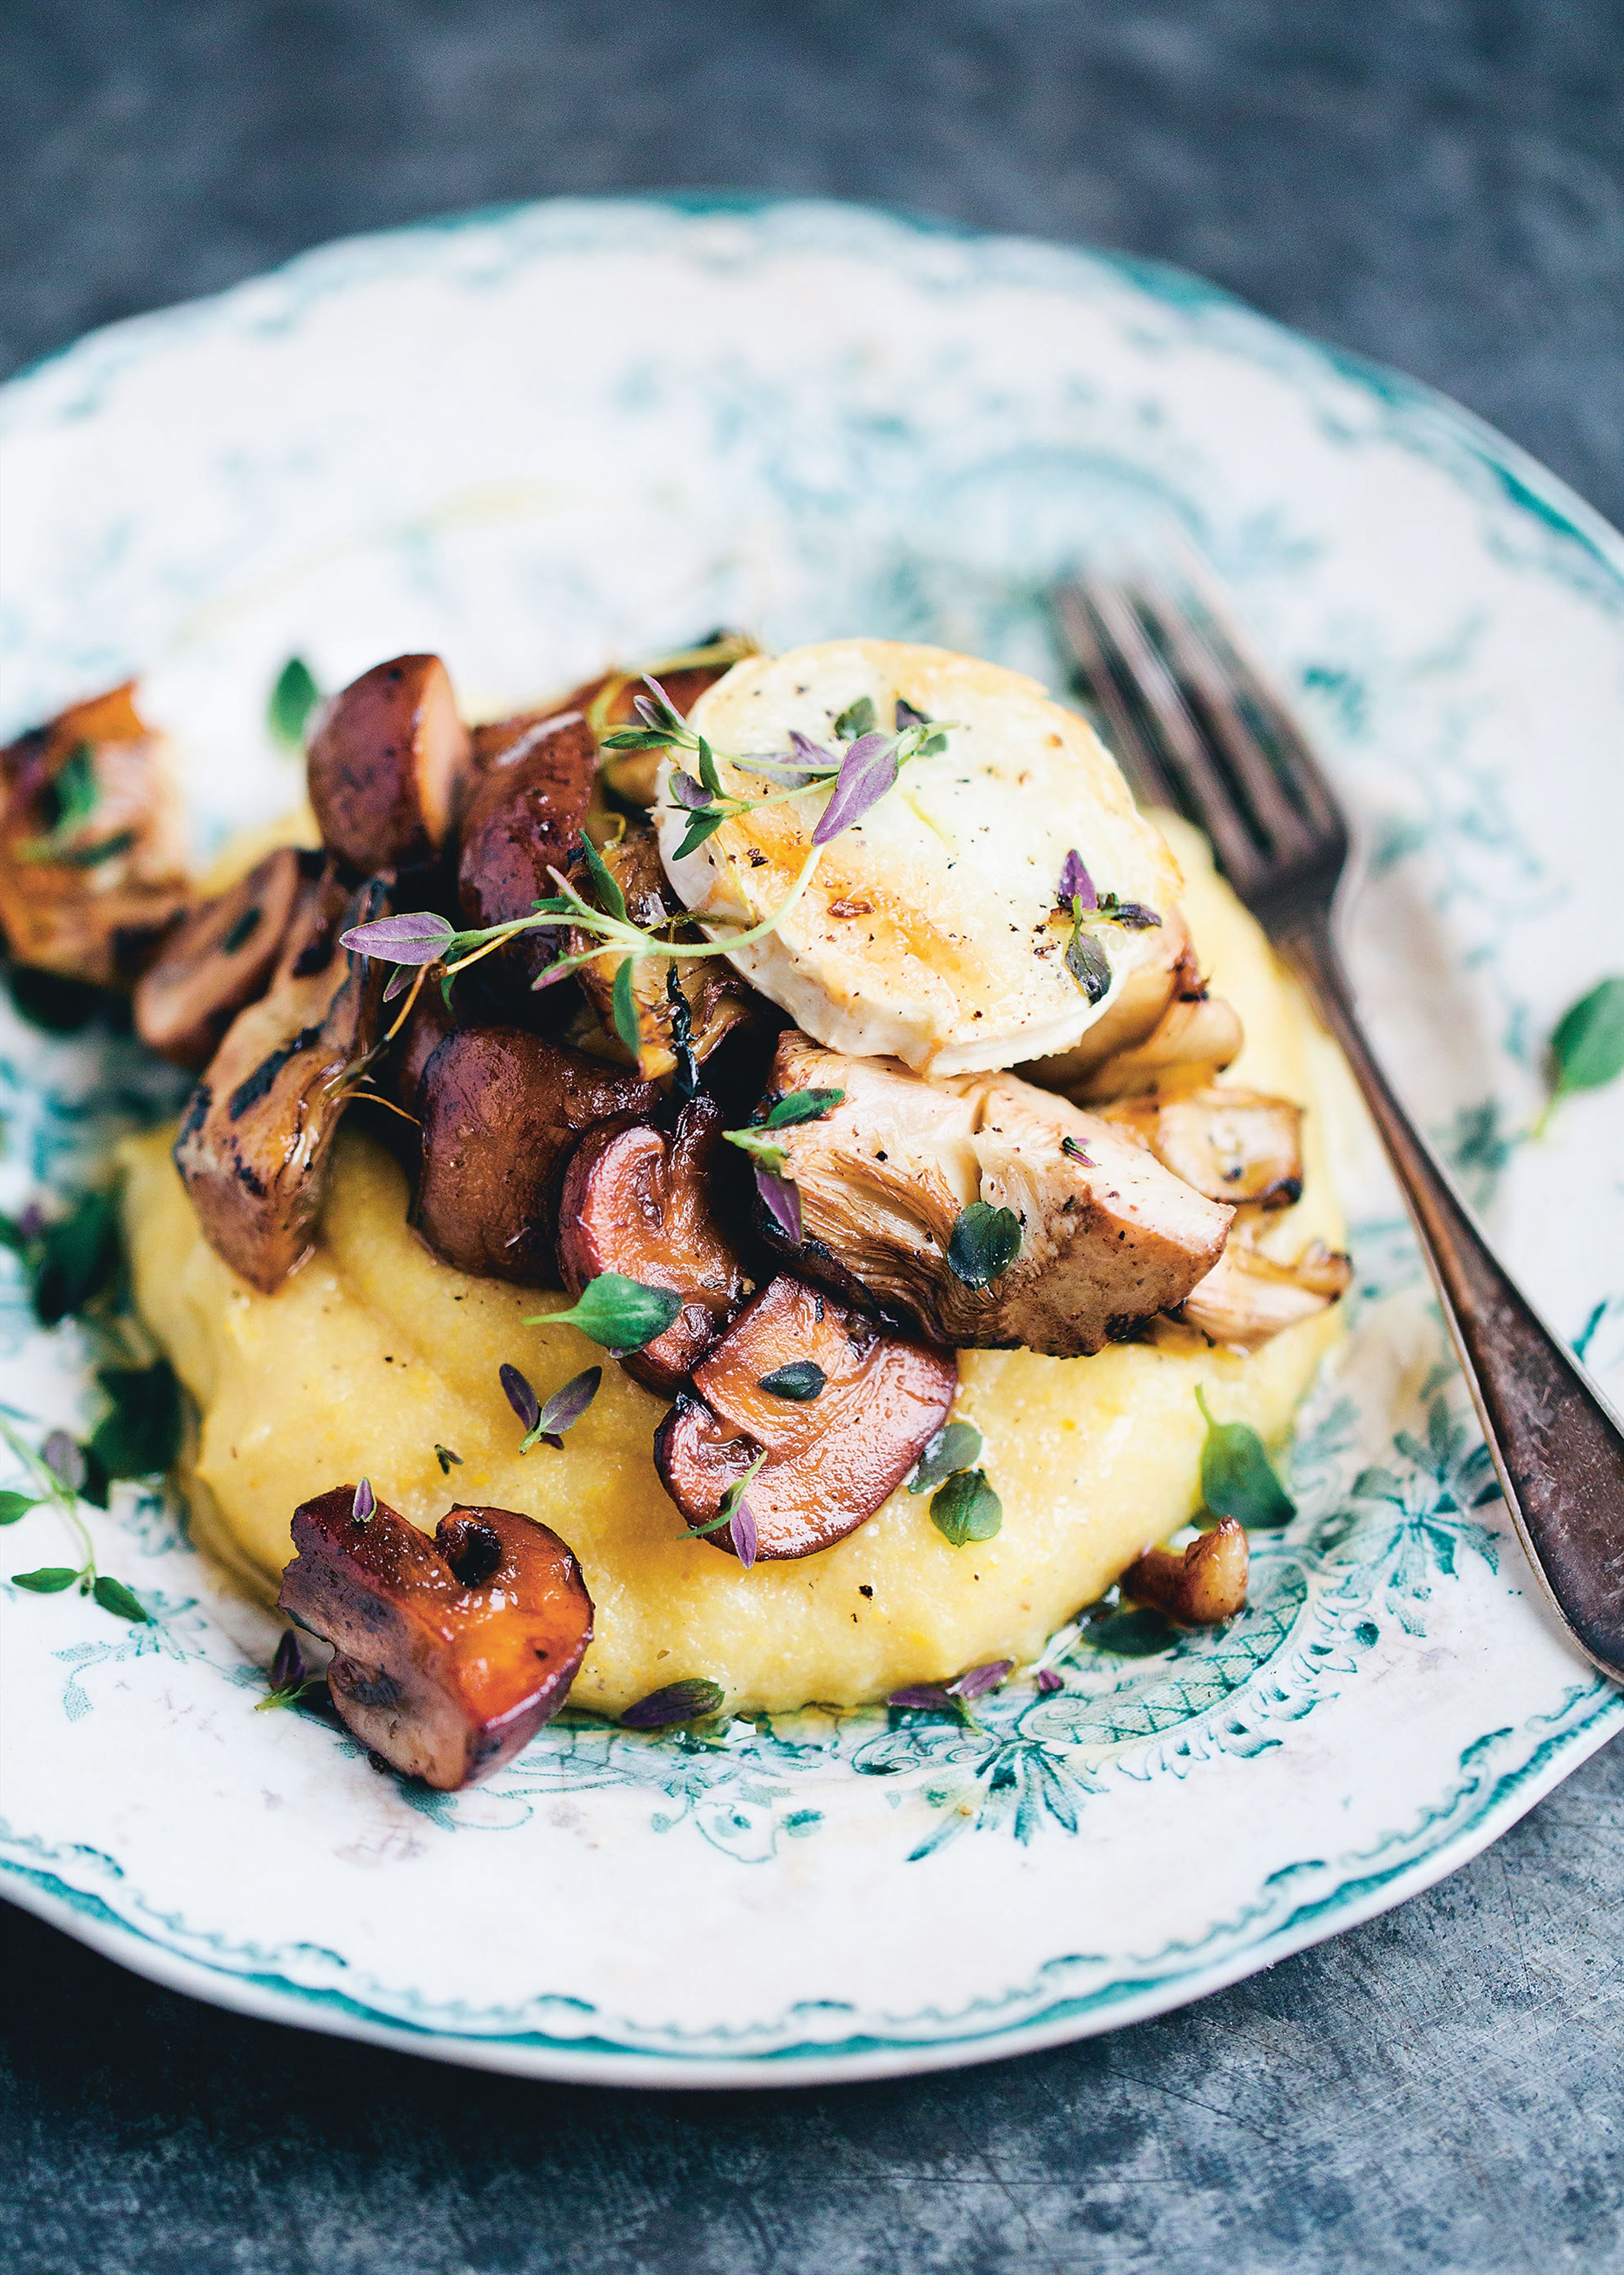 Creamy polenta with mushrooms and artichoke